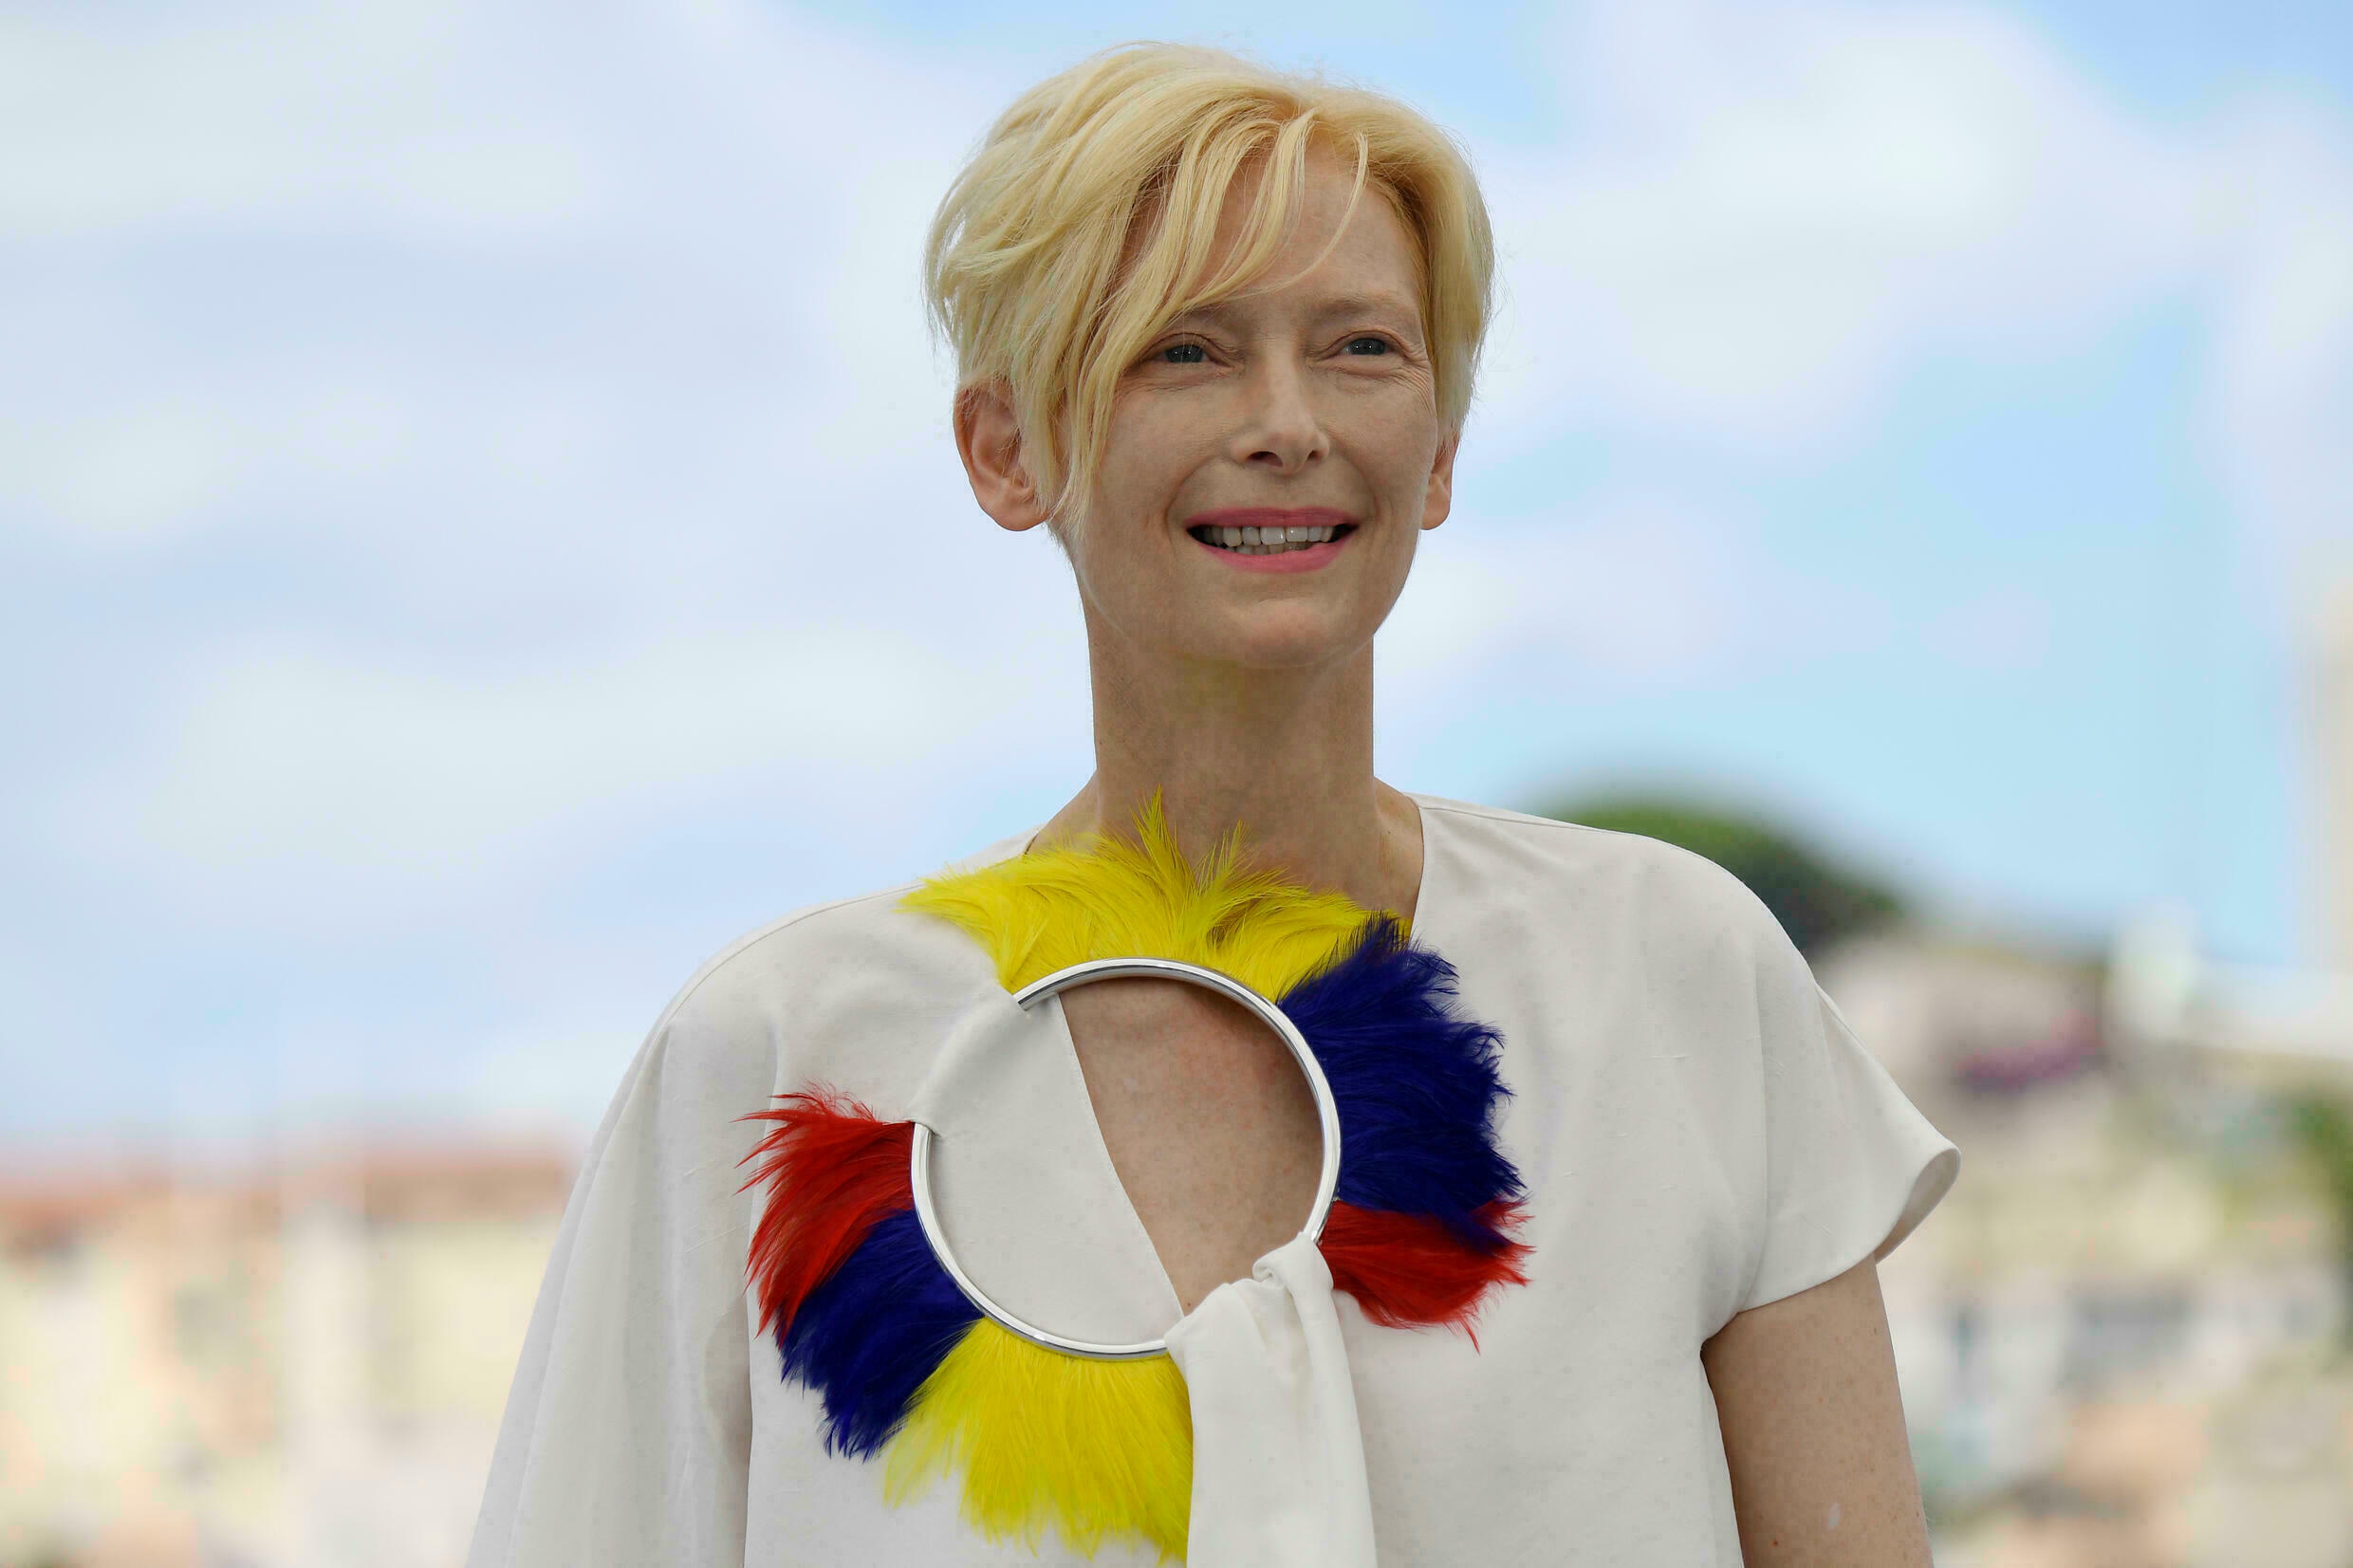 Swinton is the latest star to get involved with VR, narrating new release 'Goliath'